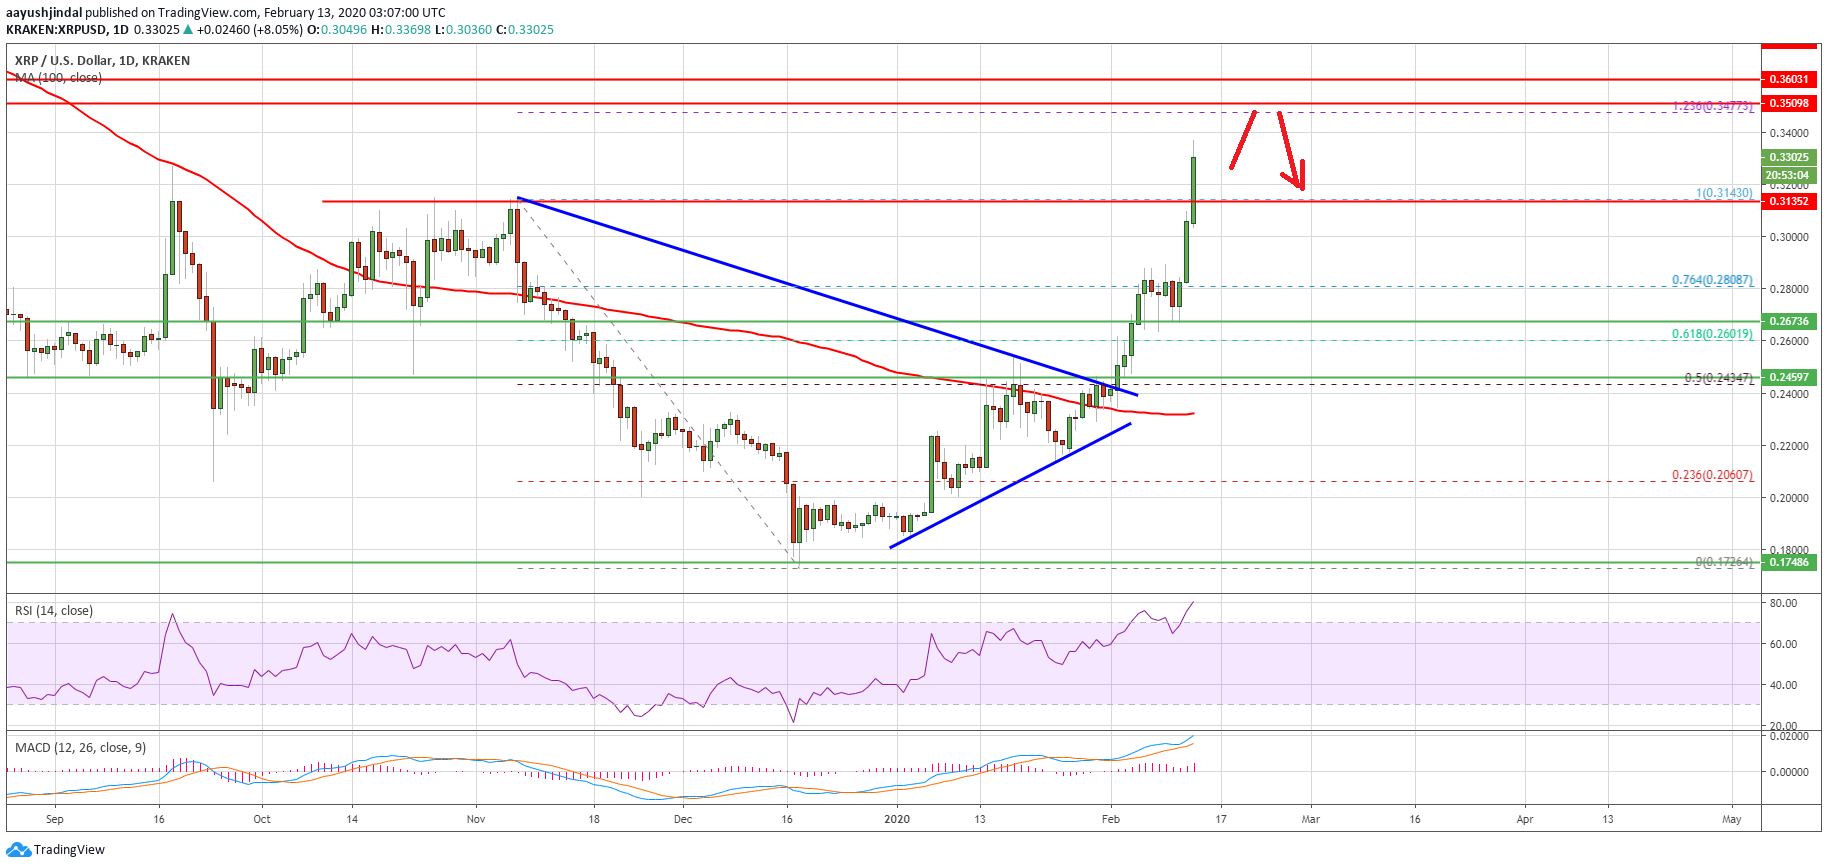 Ripple XRP 8 - Ripple (XRP) Rallies 20% To Hit $0.33 But $0.35 Region Could Be Game Changer